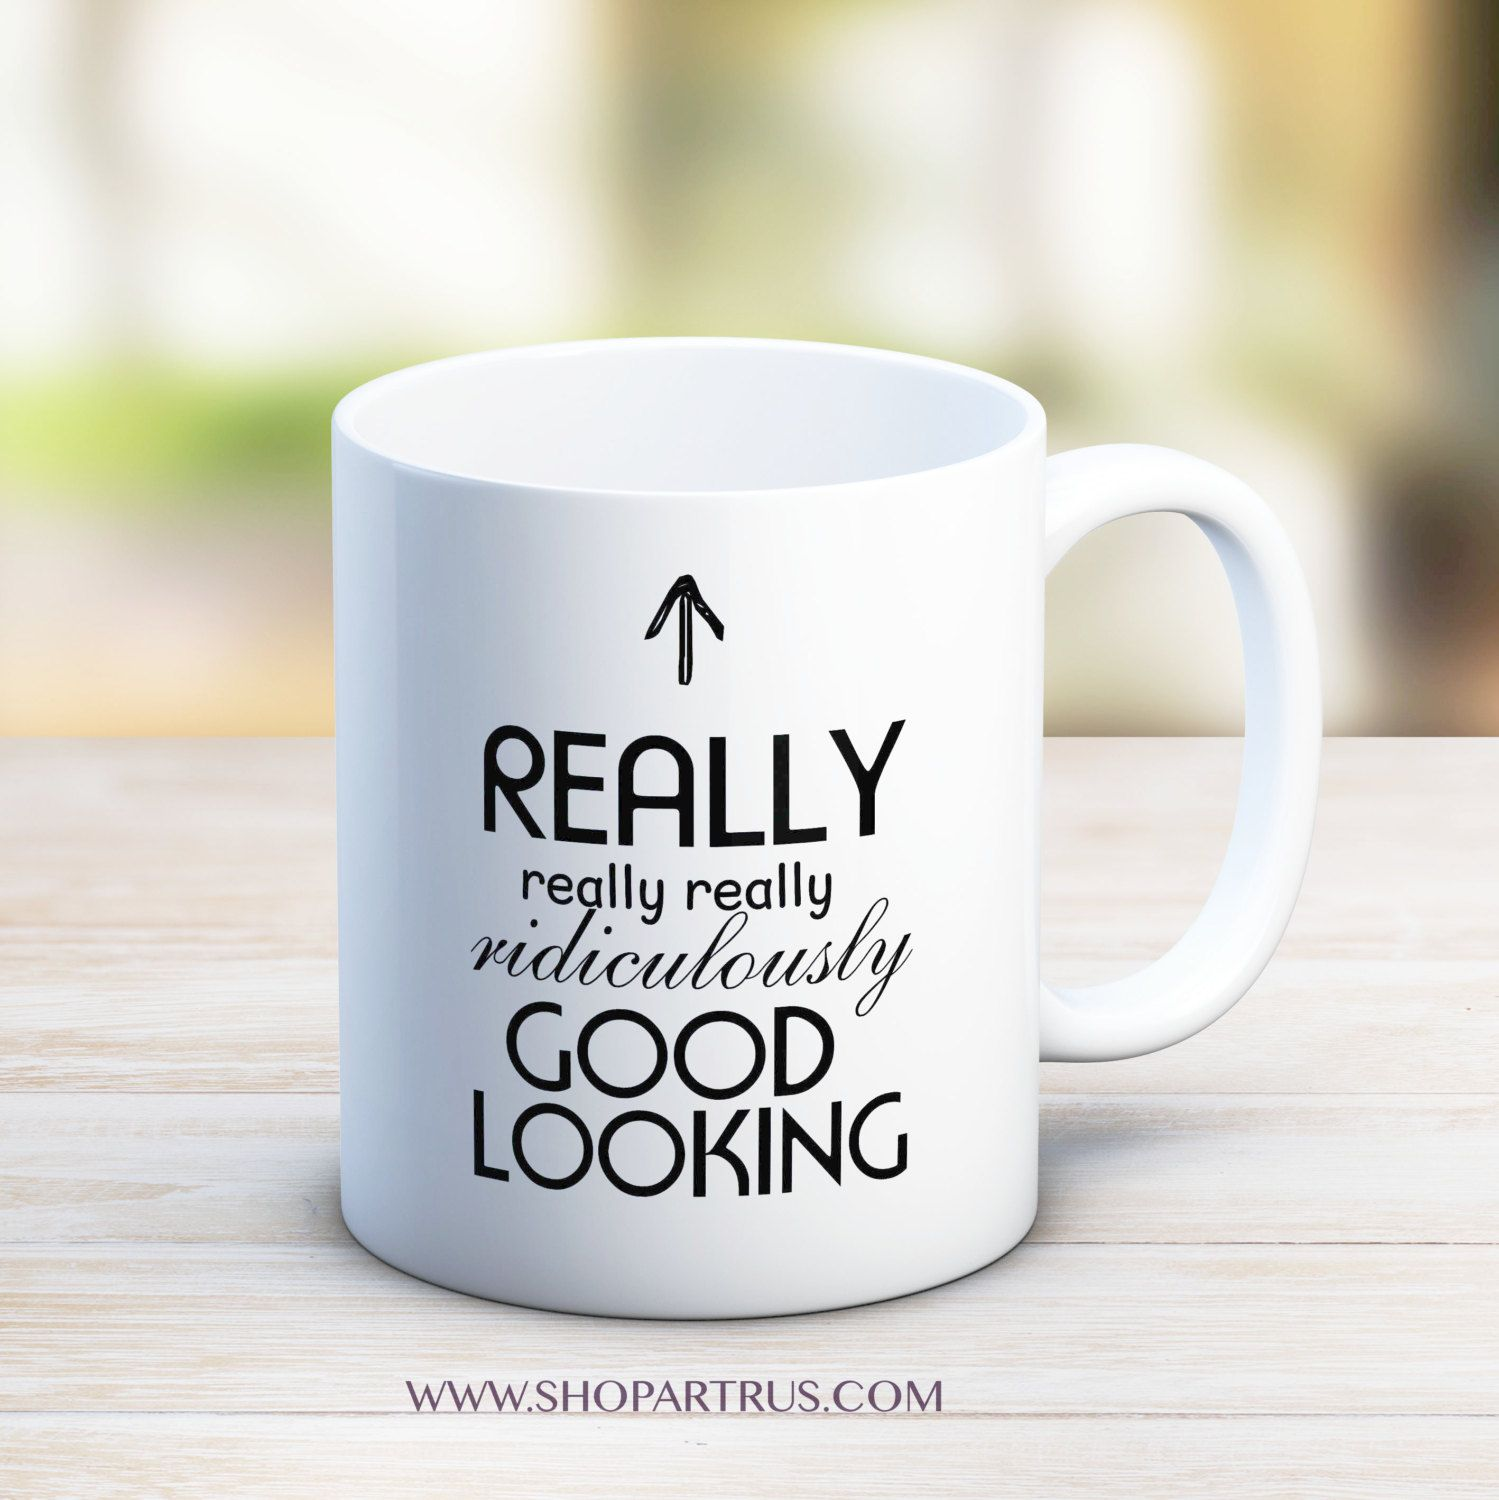 Items similar to Good Looking - Really good looking, funny coffee mug, zoolander mug, funny mugs, birthday gift, coworker gift, gift for boyfriend, MU_25 on Etsy